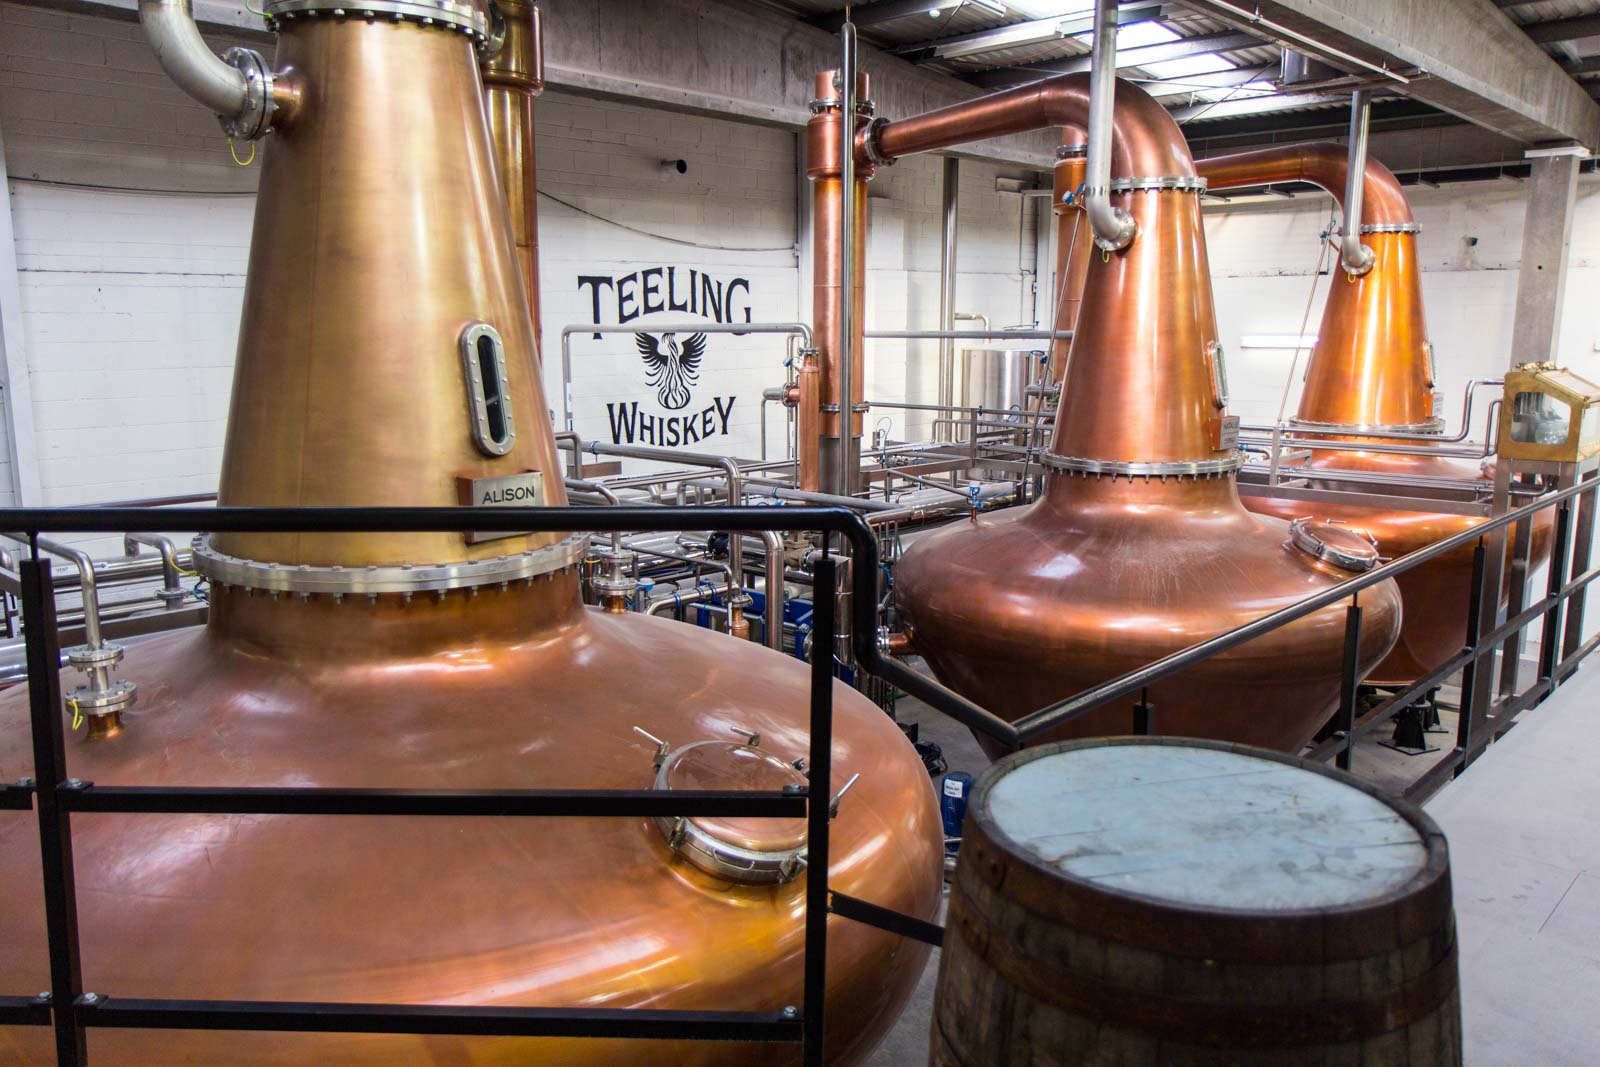 Teeling Whiskey distillery tour, Dublin, Ireland